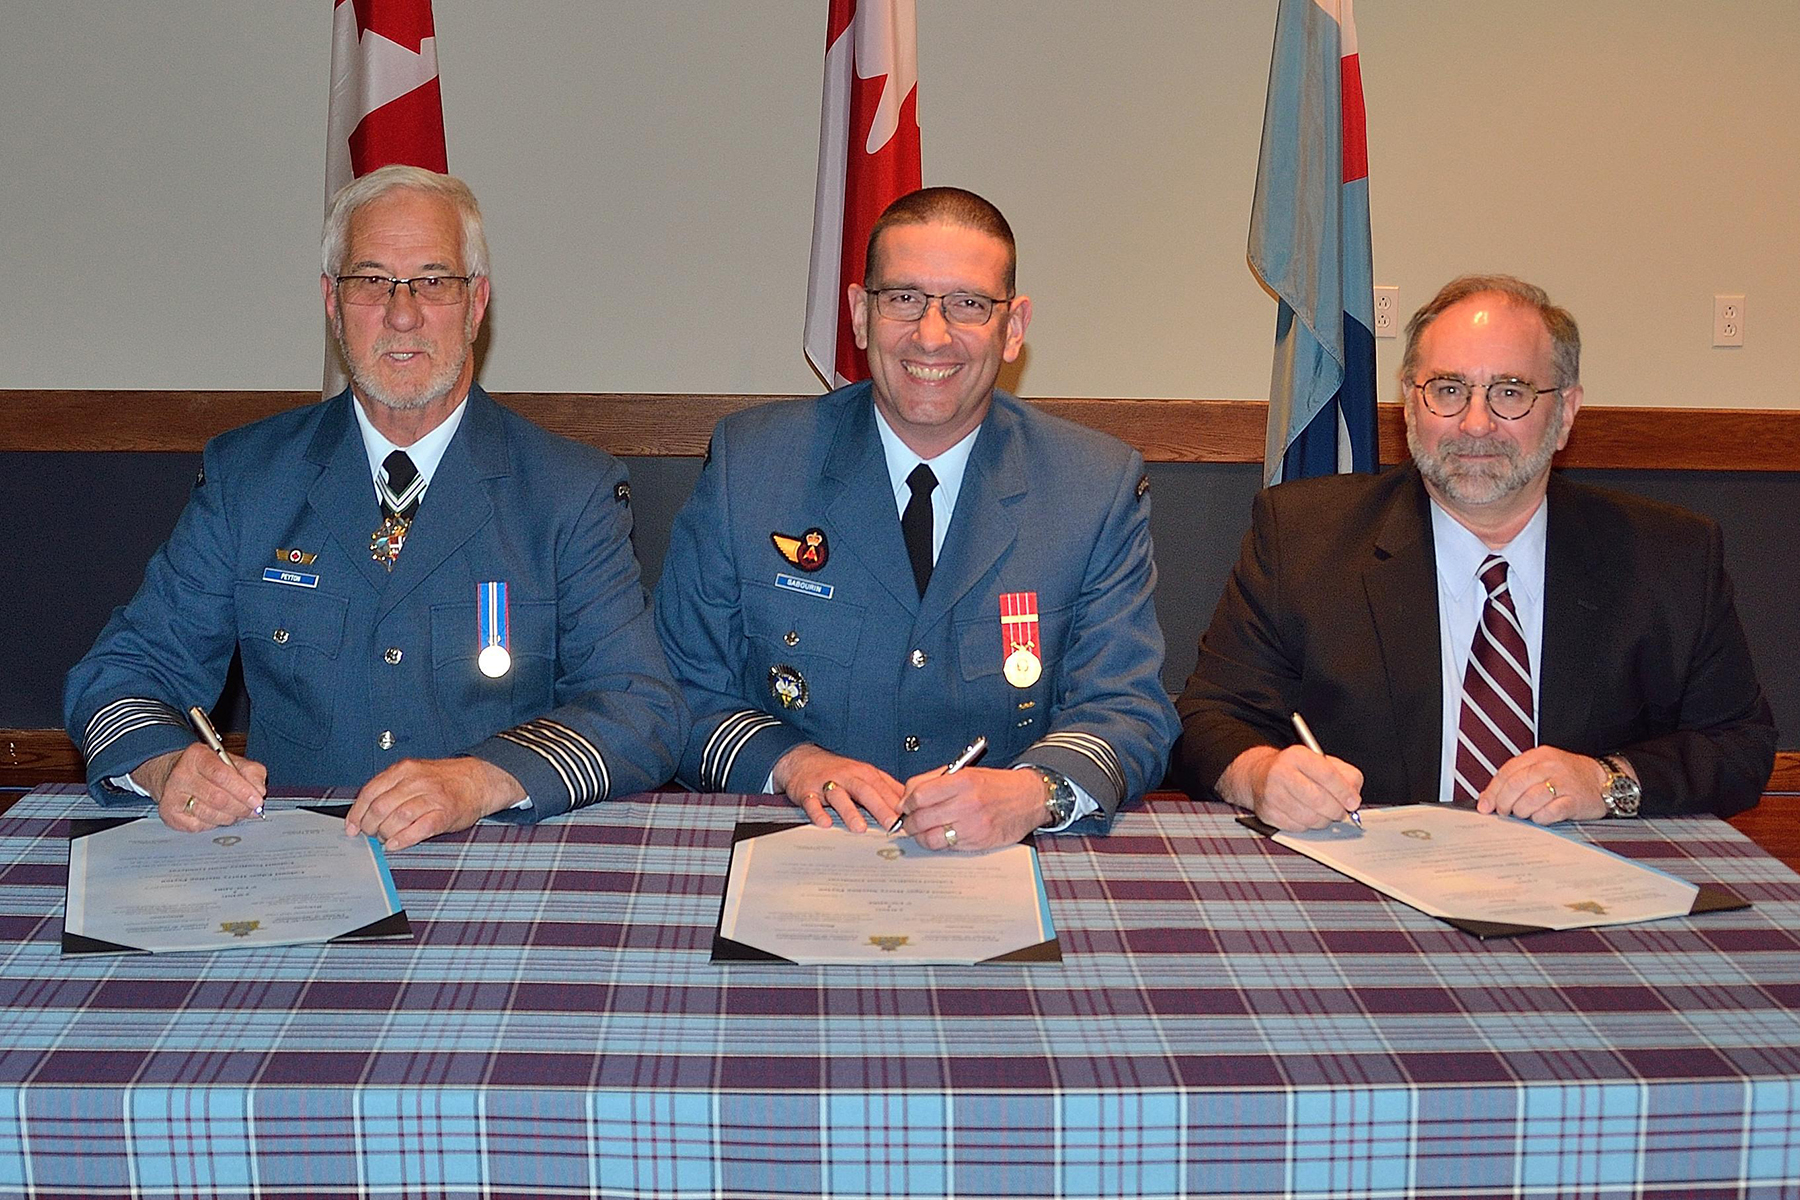 Lieutenant-Colonel Luc Sabourin (centre), wing commander of 5 Wing Goose Bay, Newfoundland and Labrador, presides over the investiture of award-winning photographer Geoff Goodyear (right) as honorary colonel of 5 Wing. He replaces outgoing Honorary Colonel Sterling Peyton.